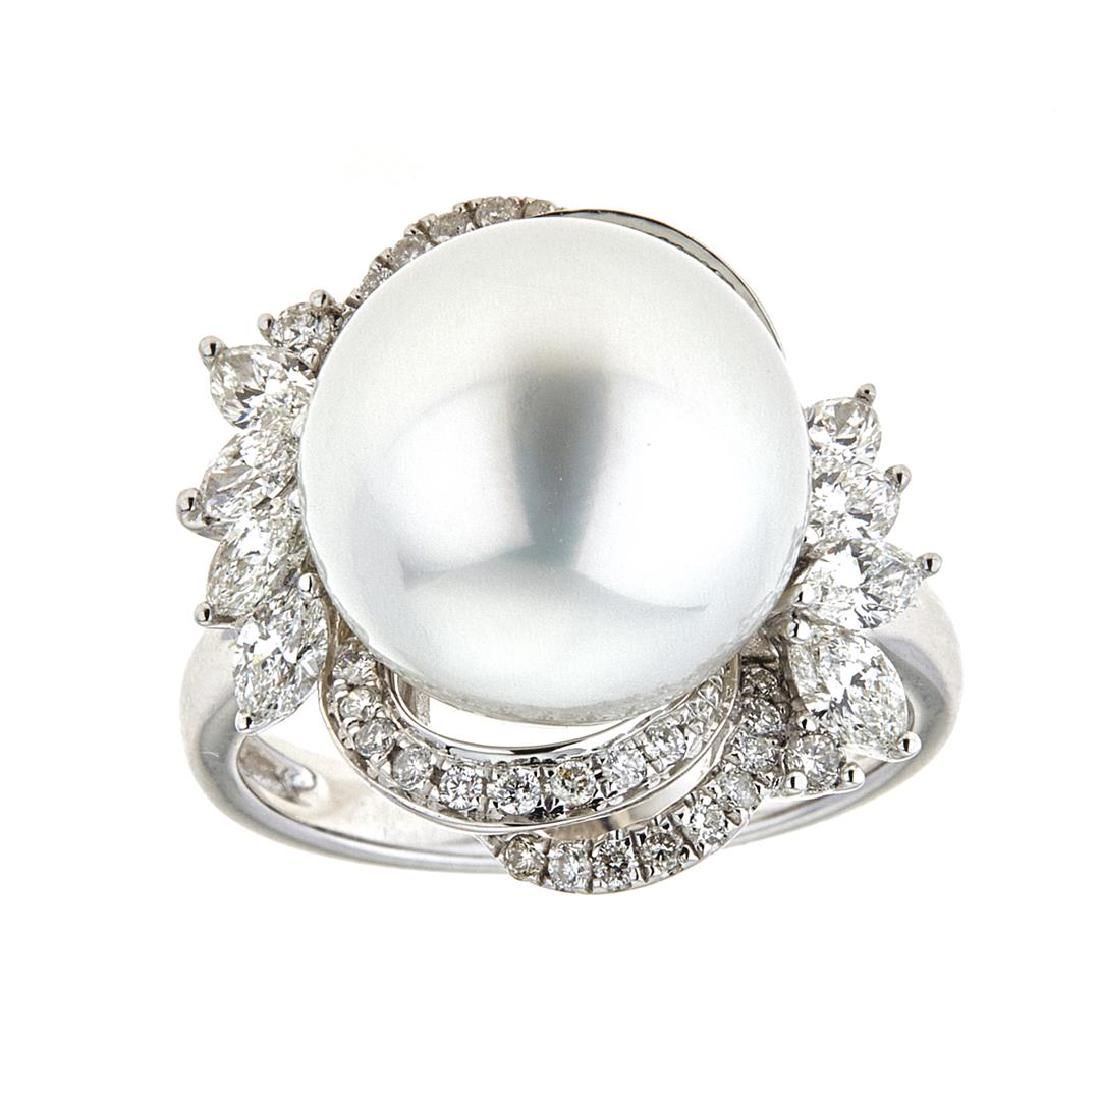 14.11 ctw South Sea Pearl and Diamond Ring - 18KT White